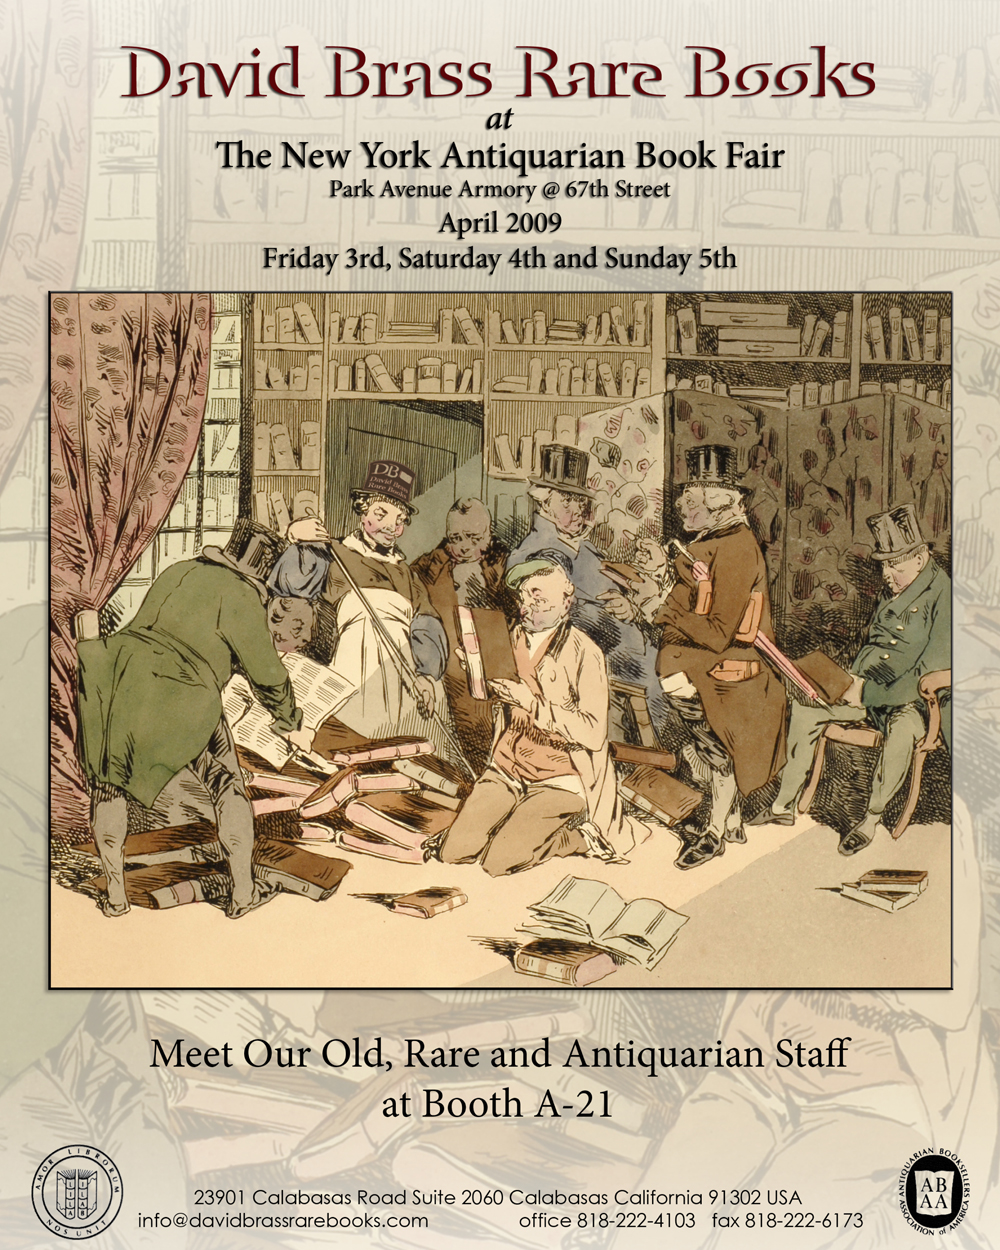 2009 New York Antiquarian Book Fair